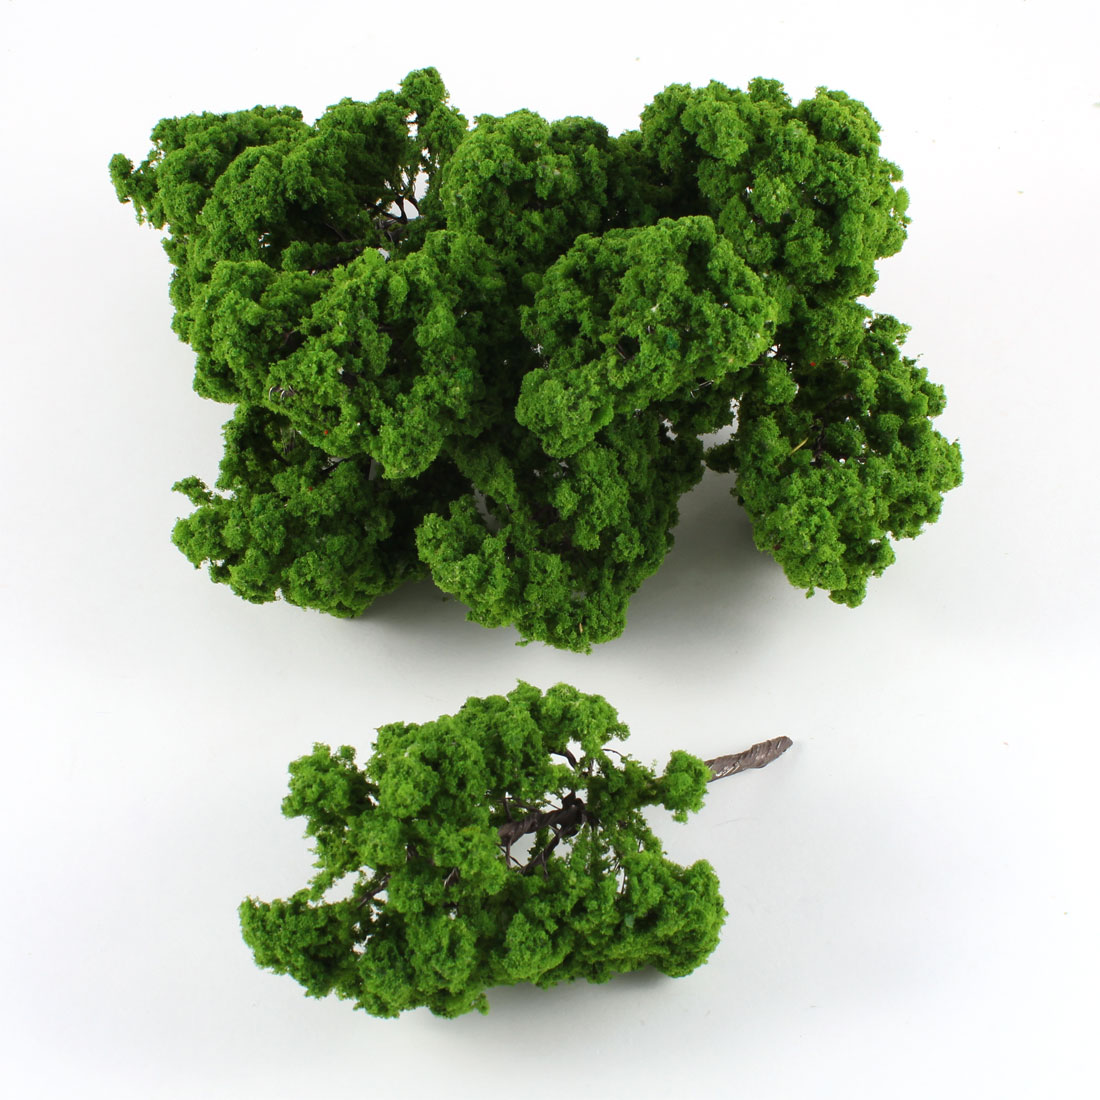 10 Pcs Dark Green Plastic Model Tree Layout Scene 12.5cm High Scale 1:50-60